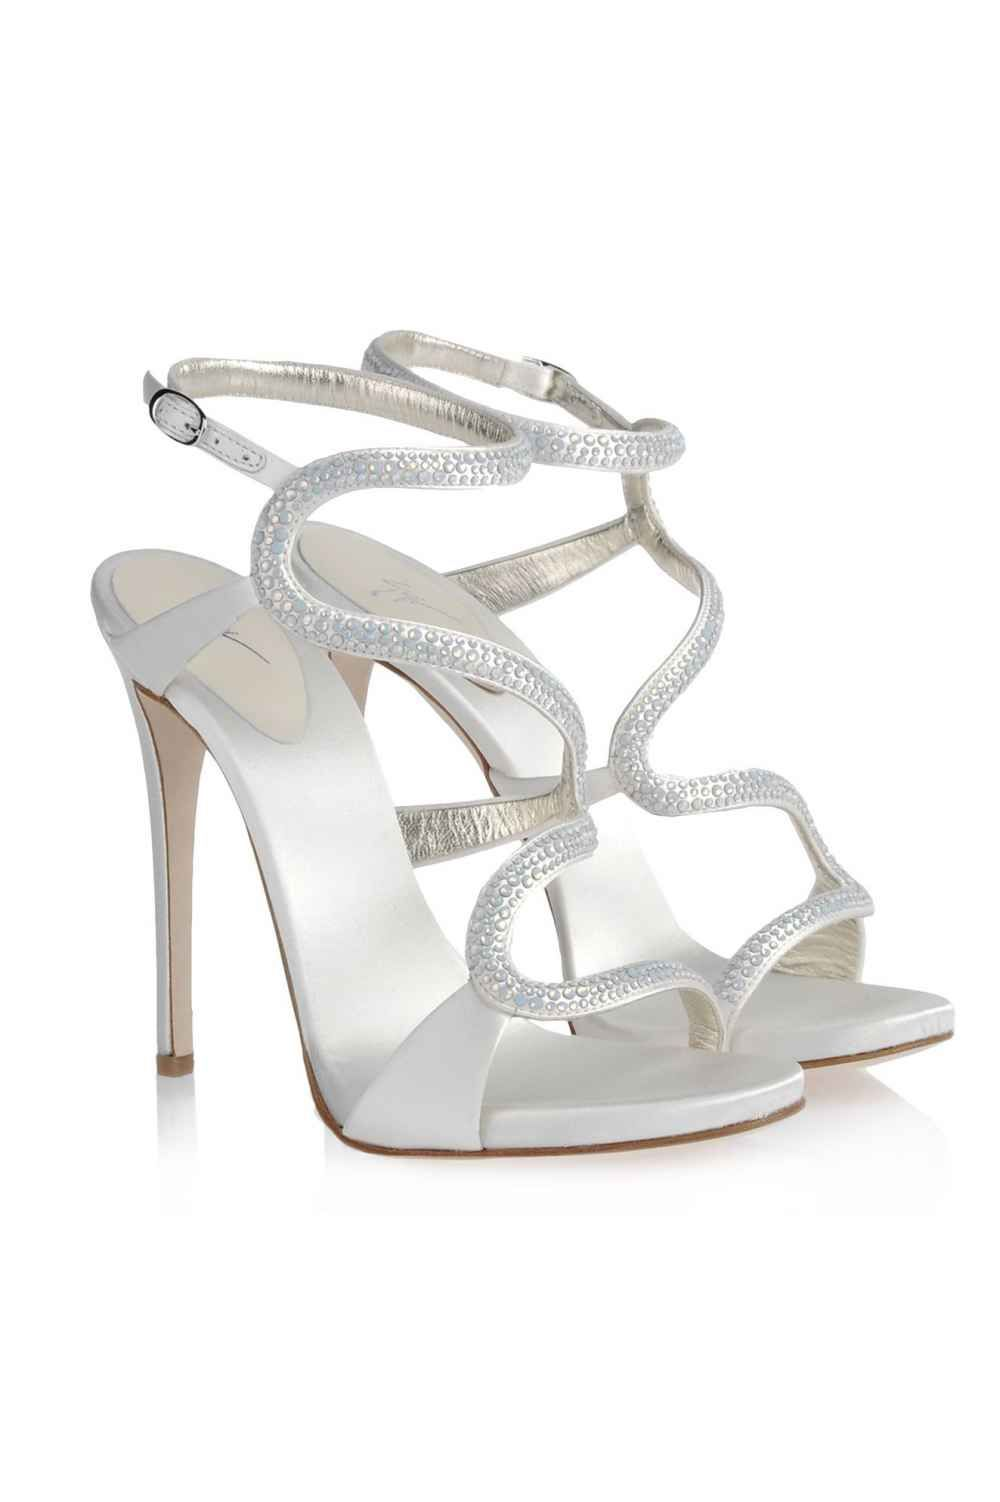 73956c74c2df1 30+ Gorgeous Shoes That Make A Wedding Dress Look Even Better ...